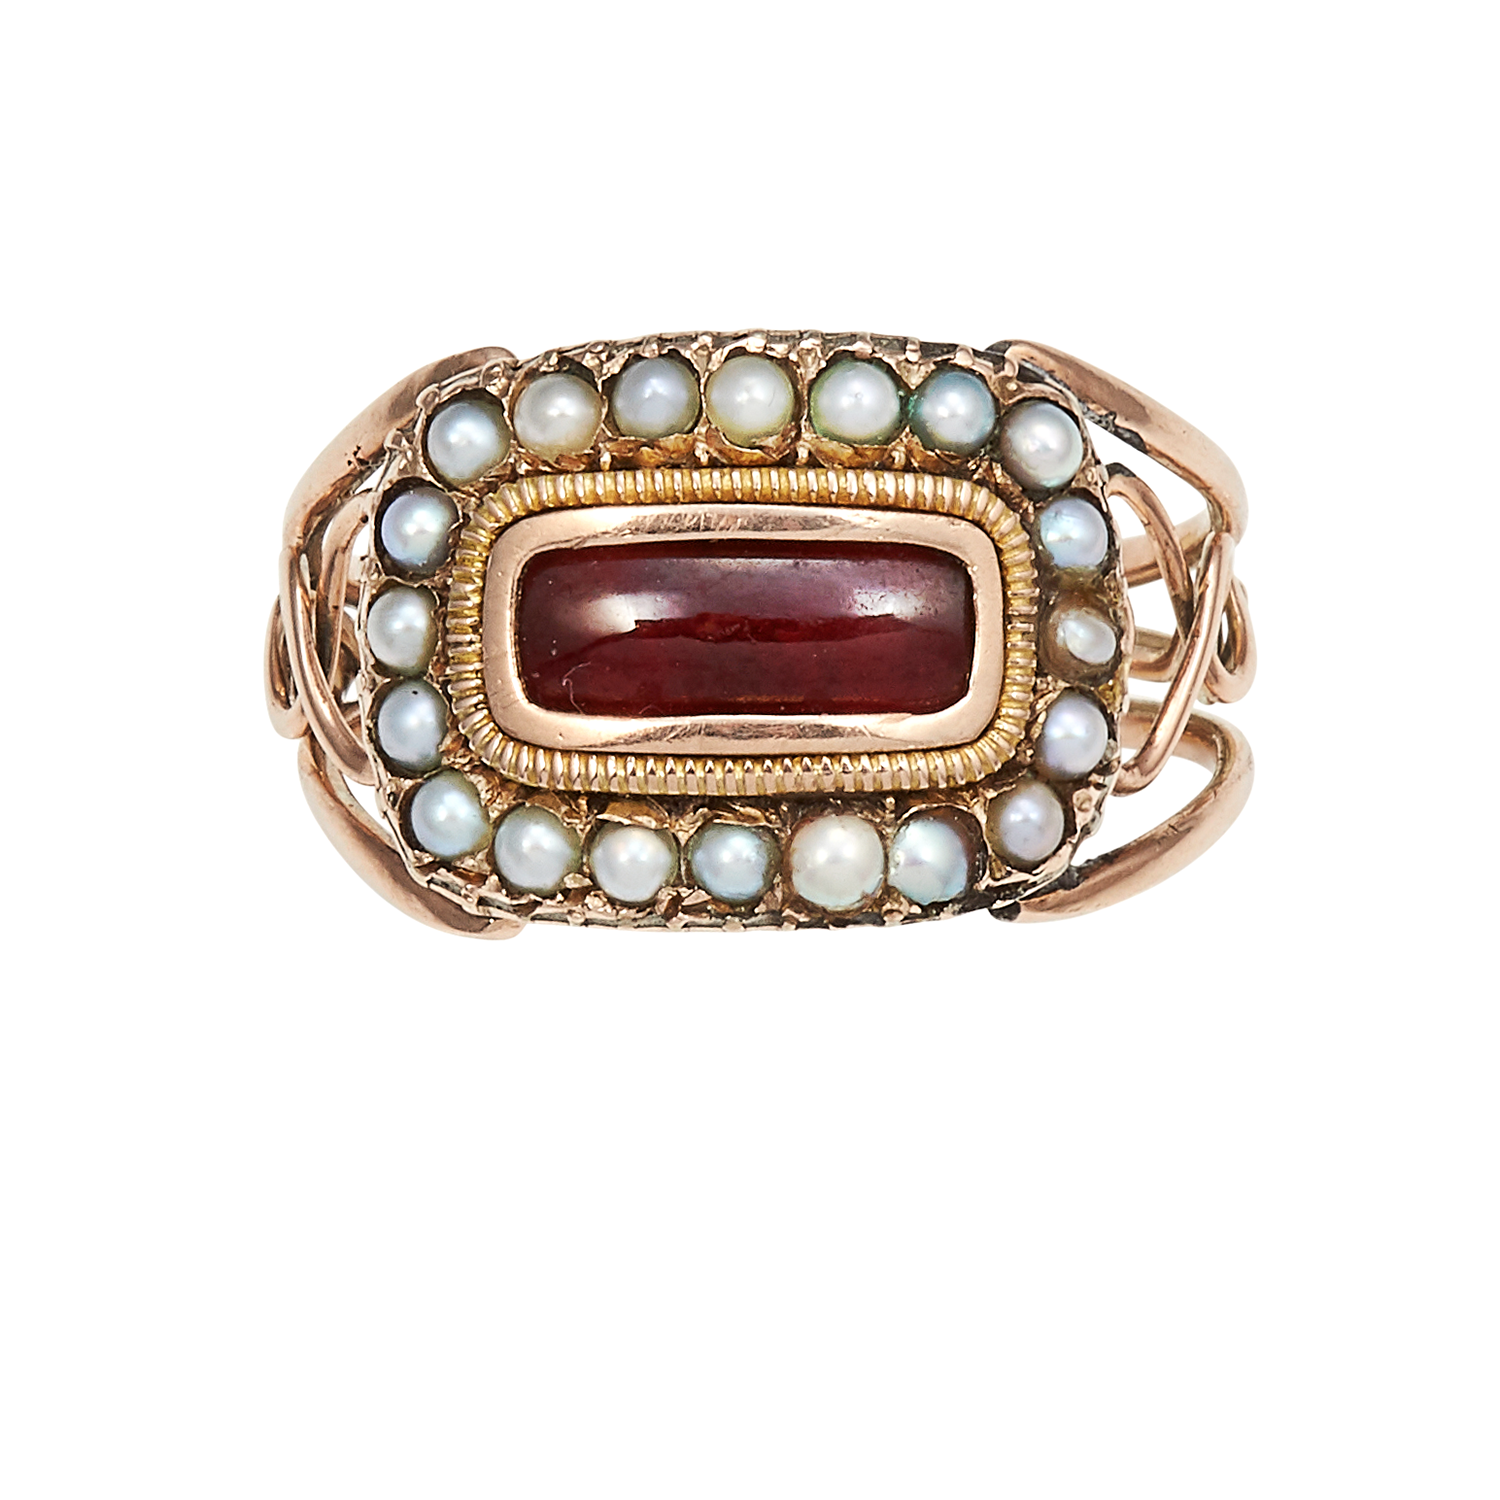 Los 12 - AN ANTIQUE GARNET AND SEED PEARL MOURNING RING, CIRCA 1830 in high carat yellow gold, set with an